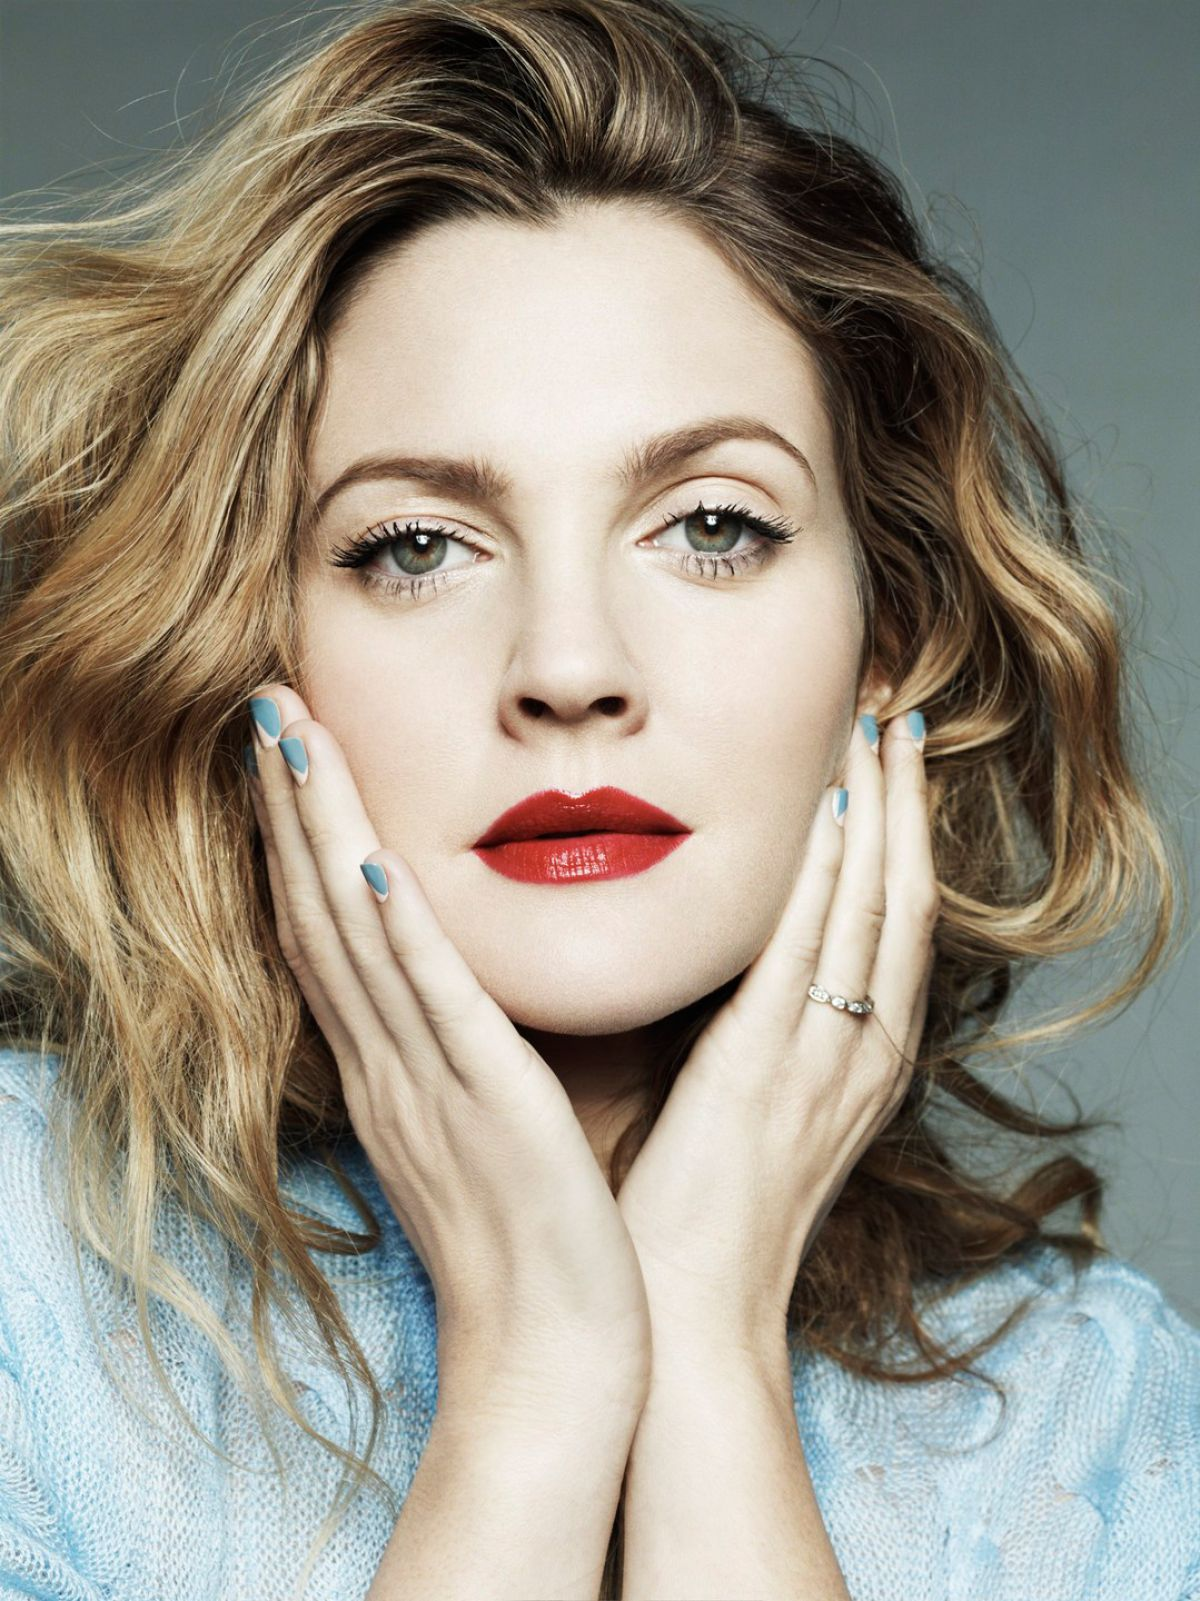 <b>DREW BARRYMORE</b> in Marie Claire Magazine, February 2014 Issue © hawtcelebs. <b>...</b> - drew-barrymore-in-marie-claire-magazine-february-2014-issue_4